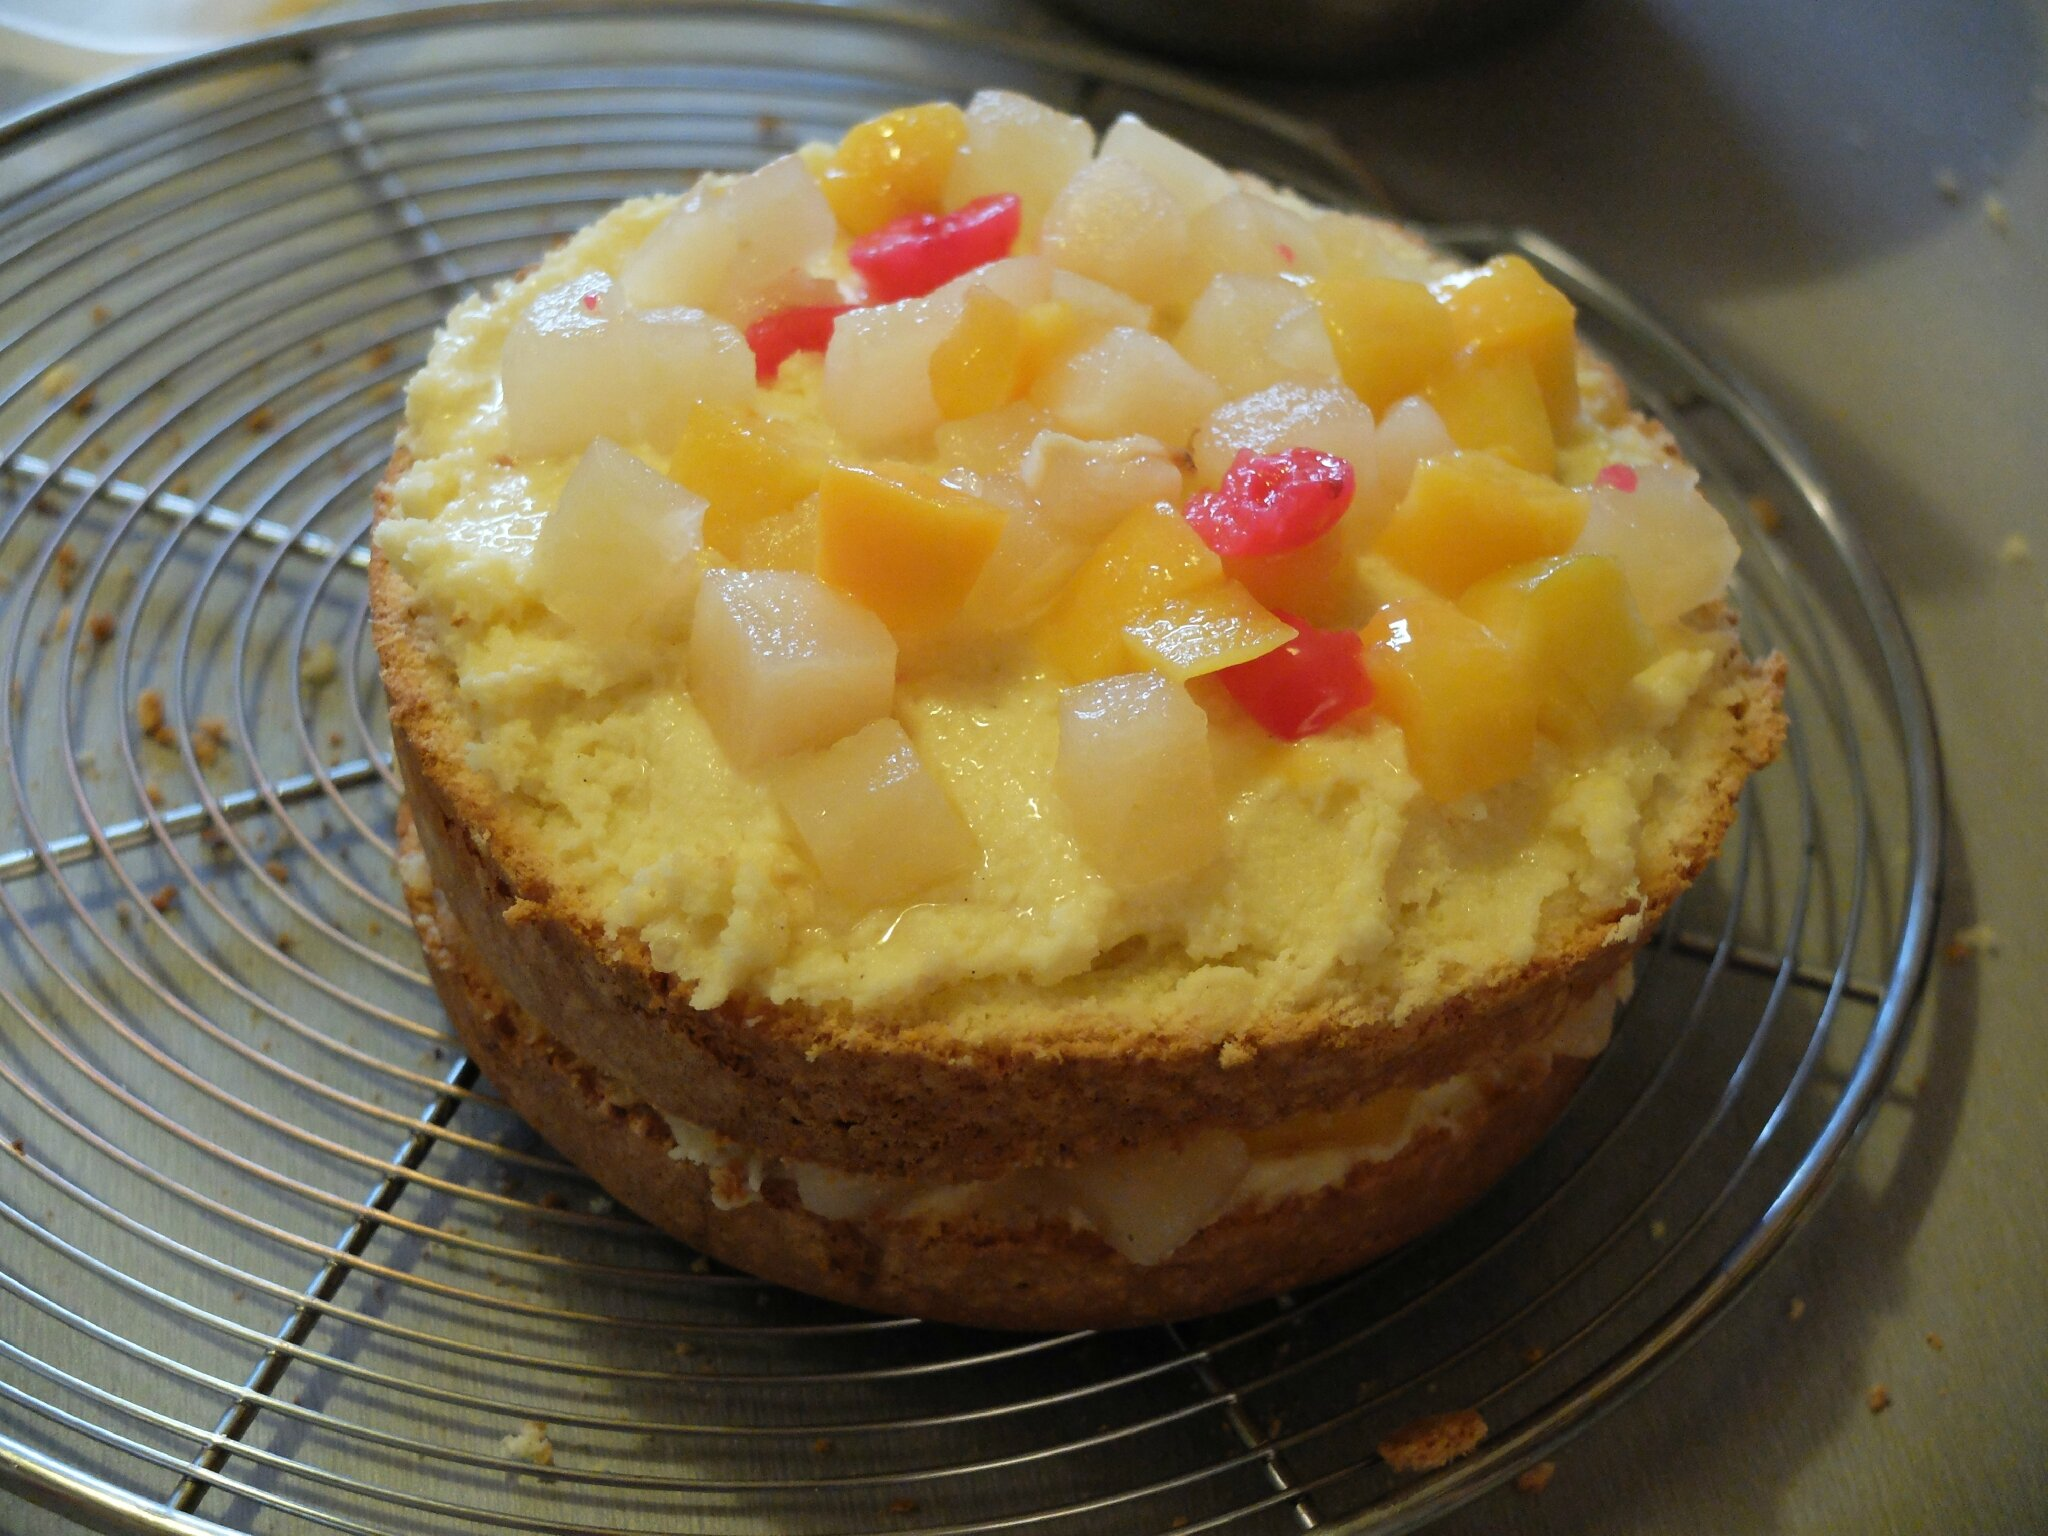 Gateau salade fruit